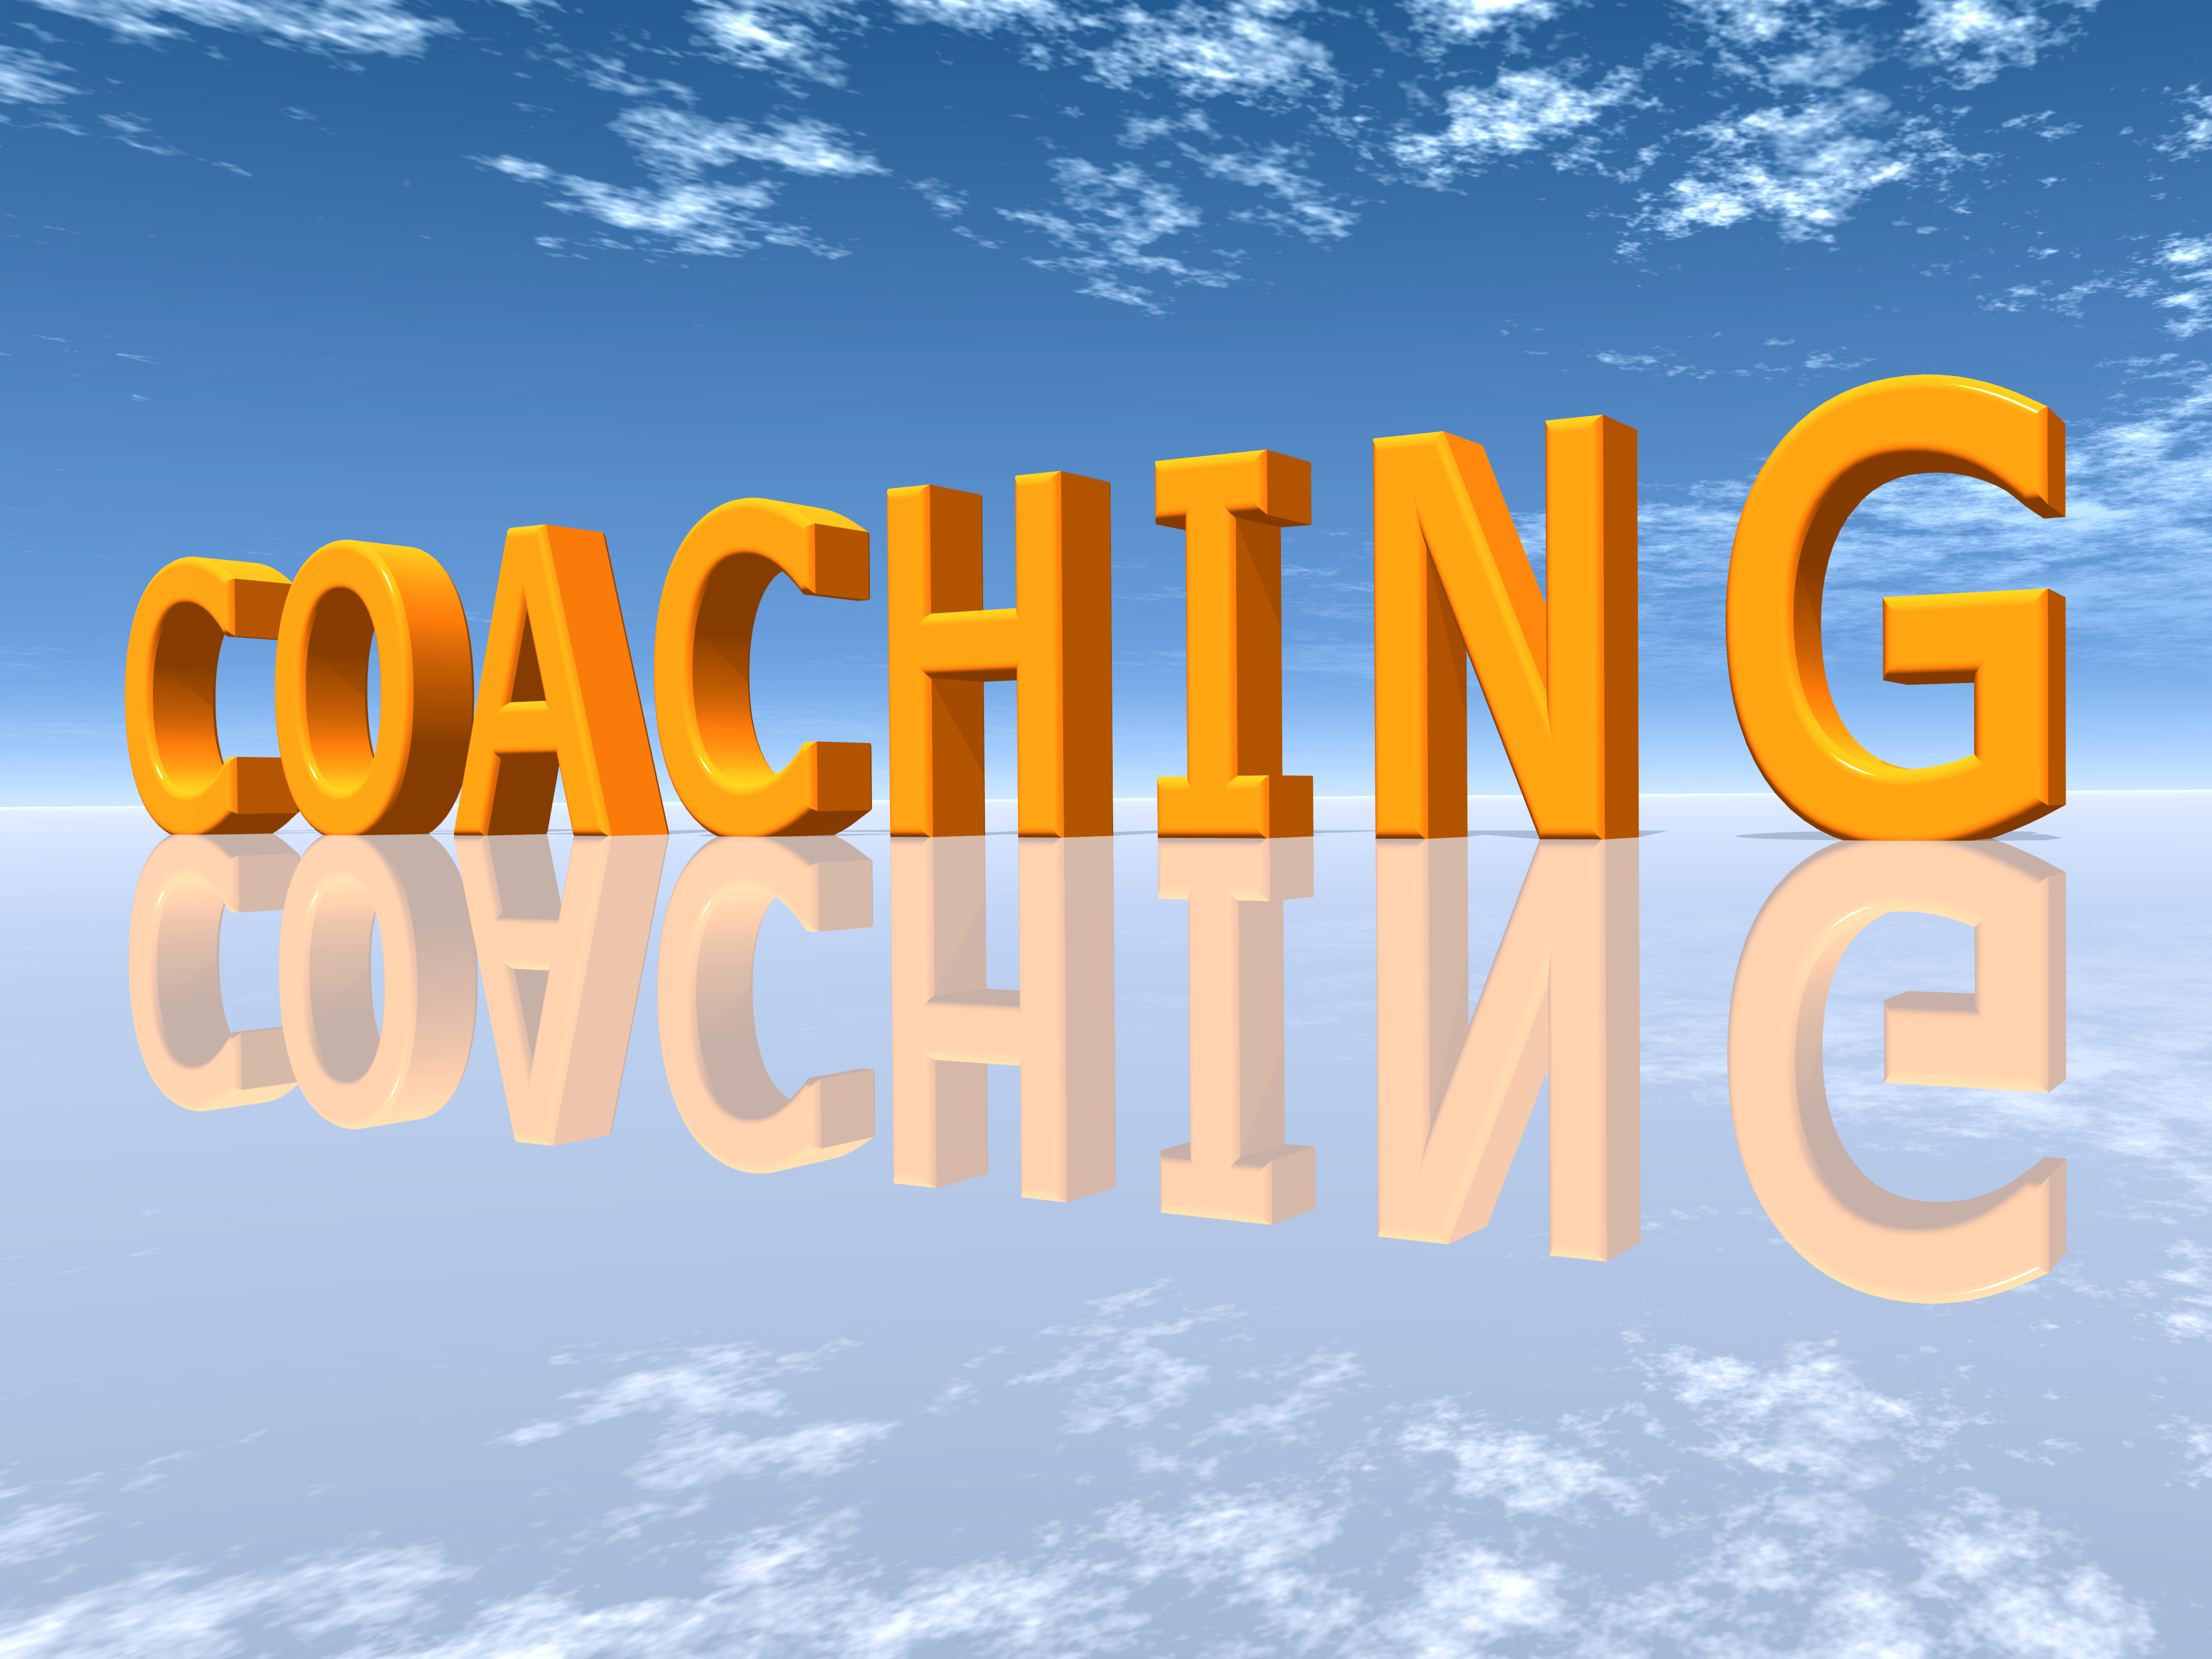 Coaching Compared with Other Roles